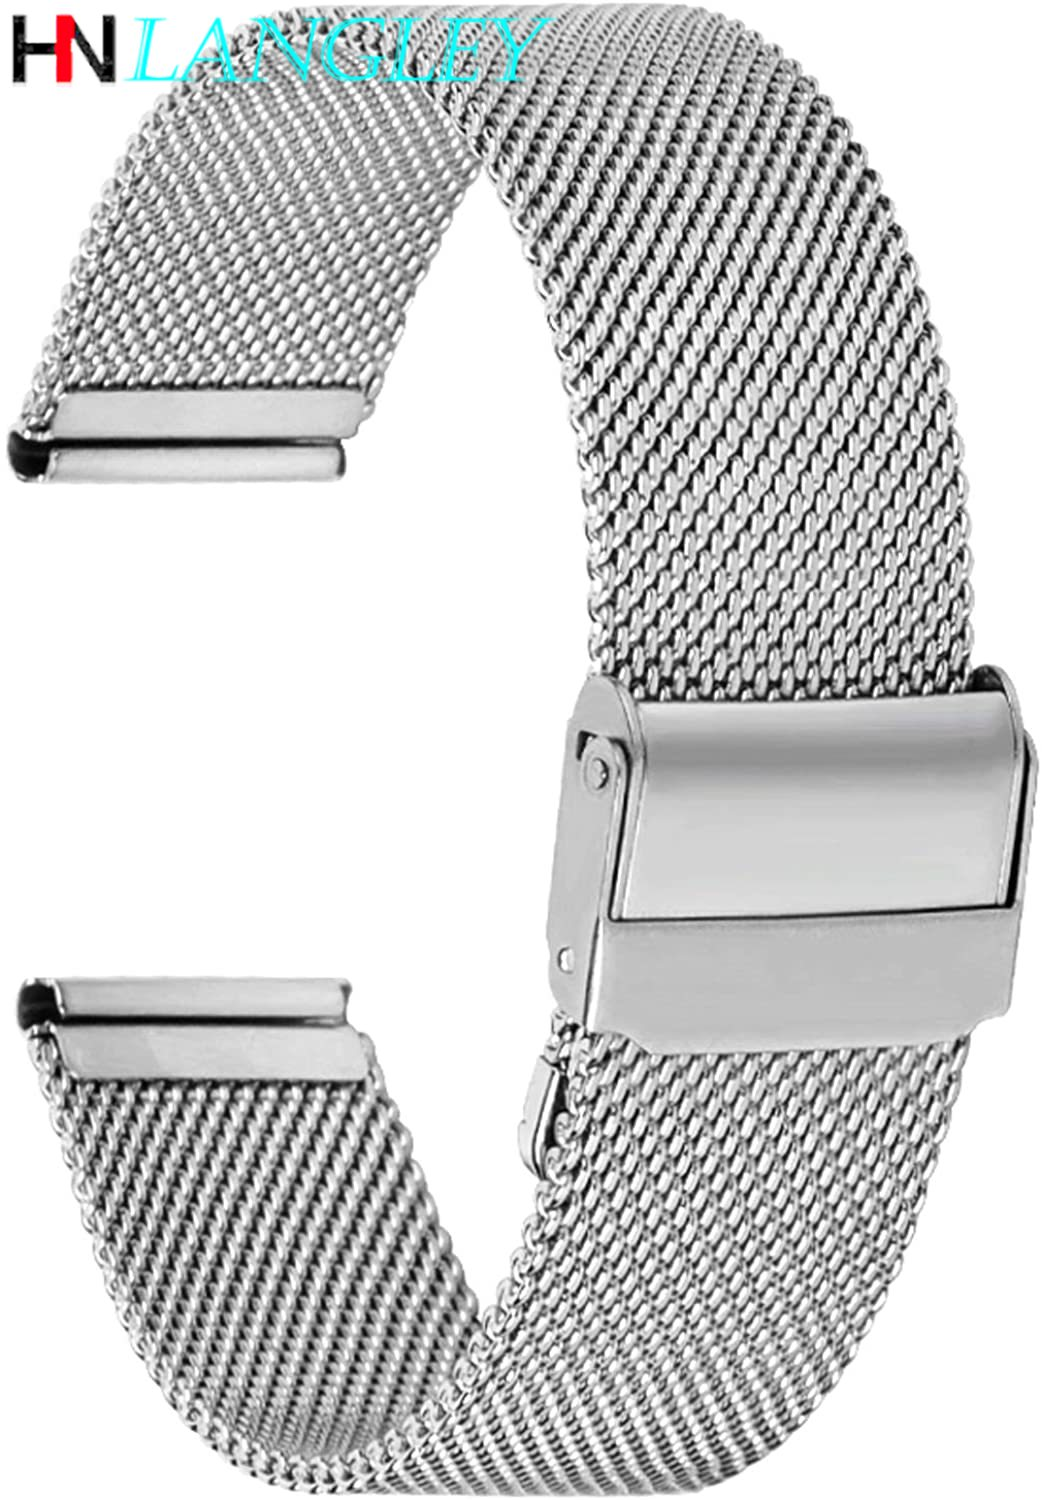 Milanese Watch Band Stainless Steel Wristband Replacement Strap Width 12mm 13mm 14mm 16mm 17mm 18mm 19mm 20mm 22mm With Tool Pin